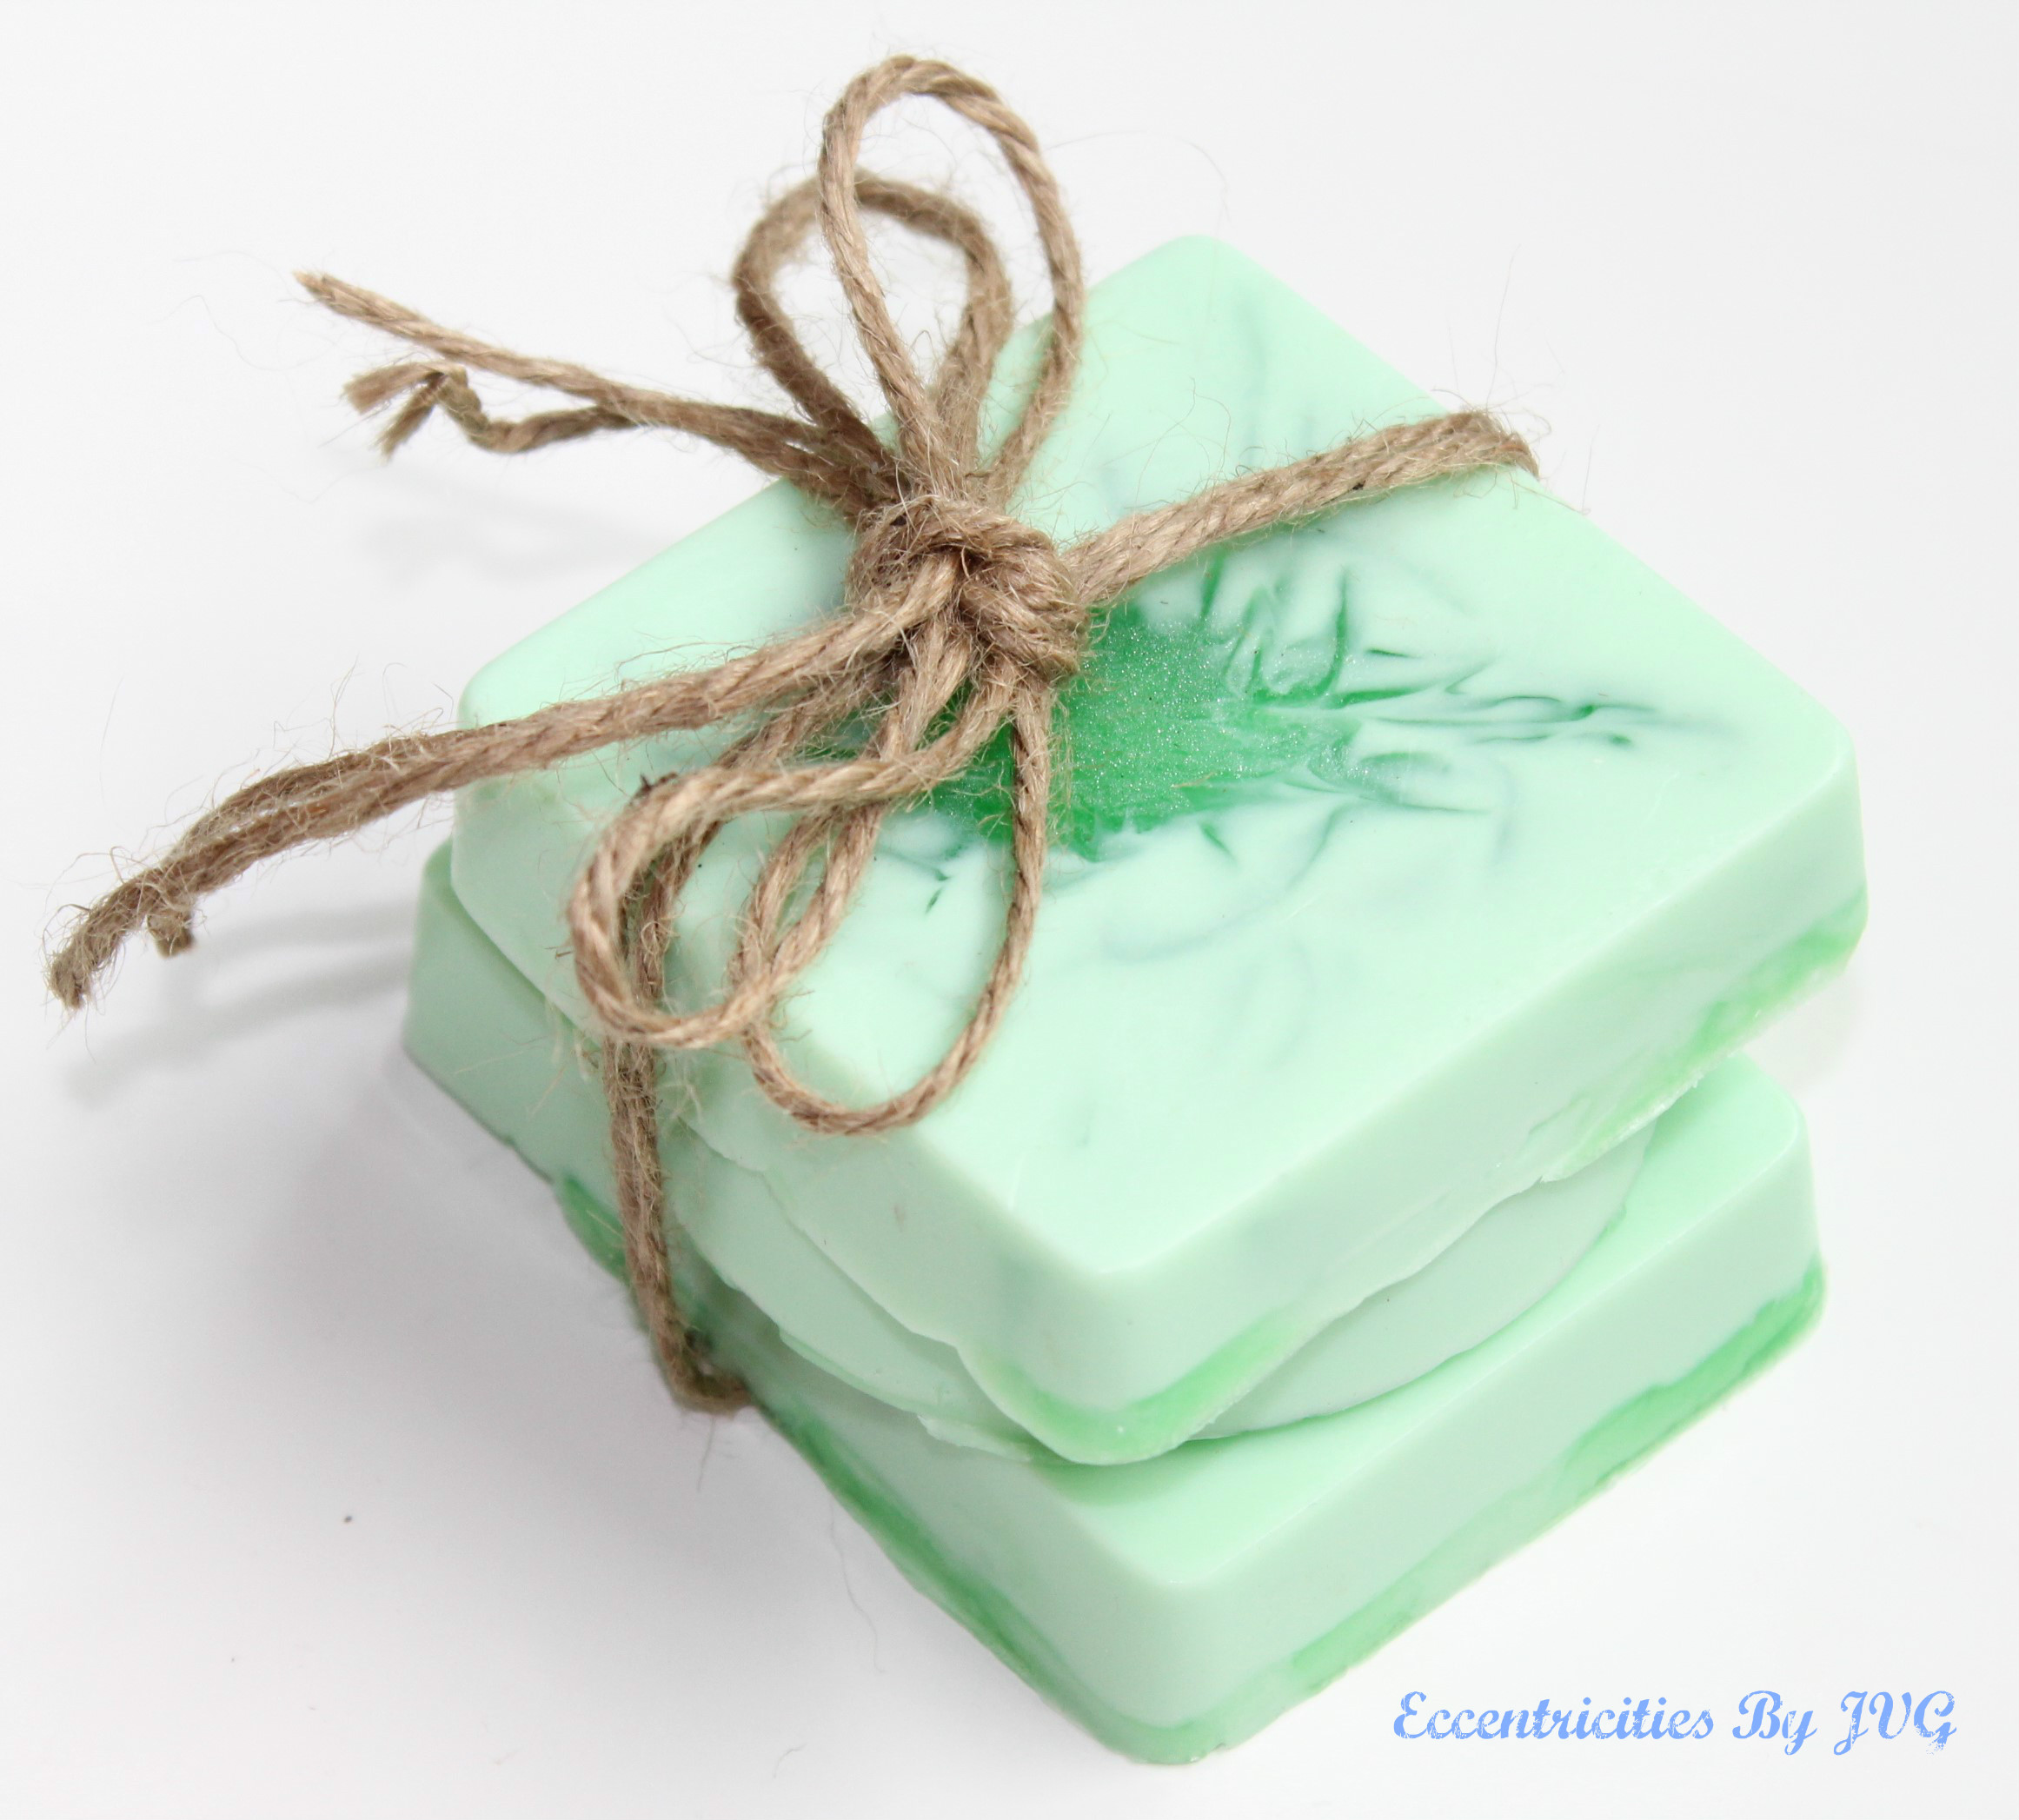 homemade soap making with fresh herbs from the garden